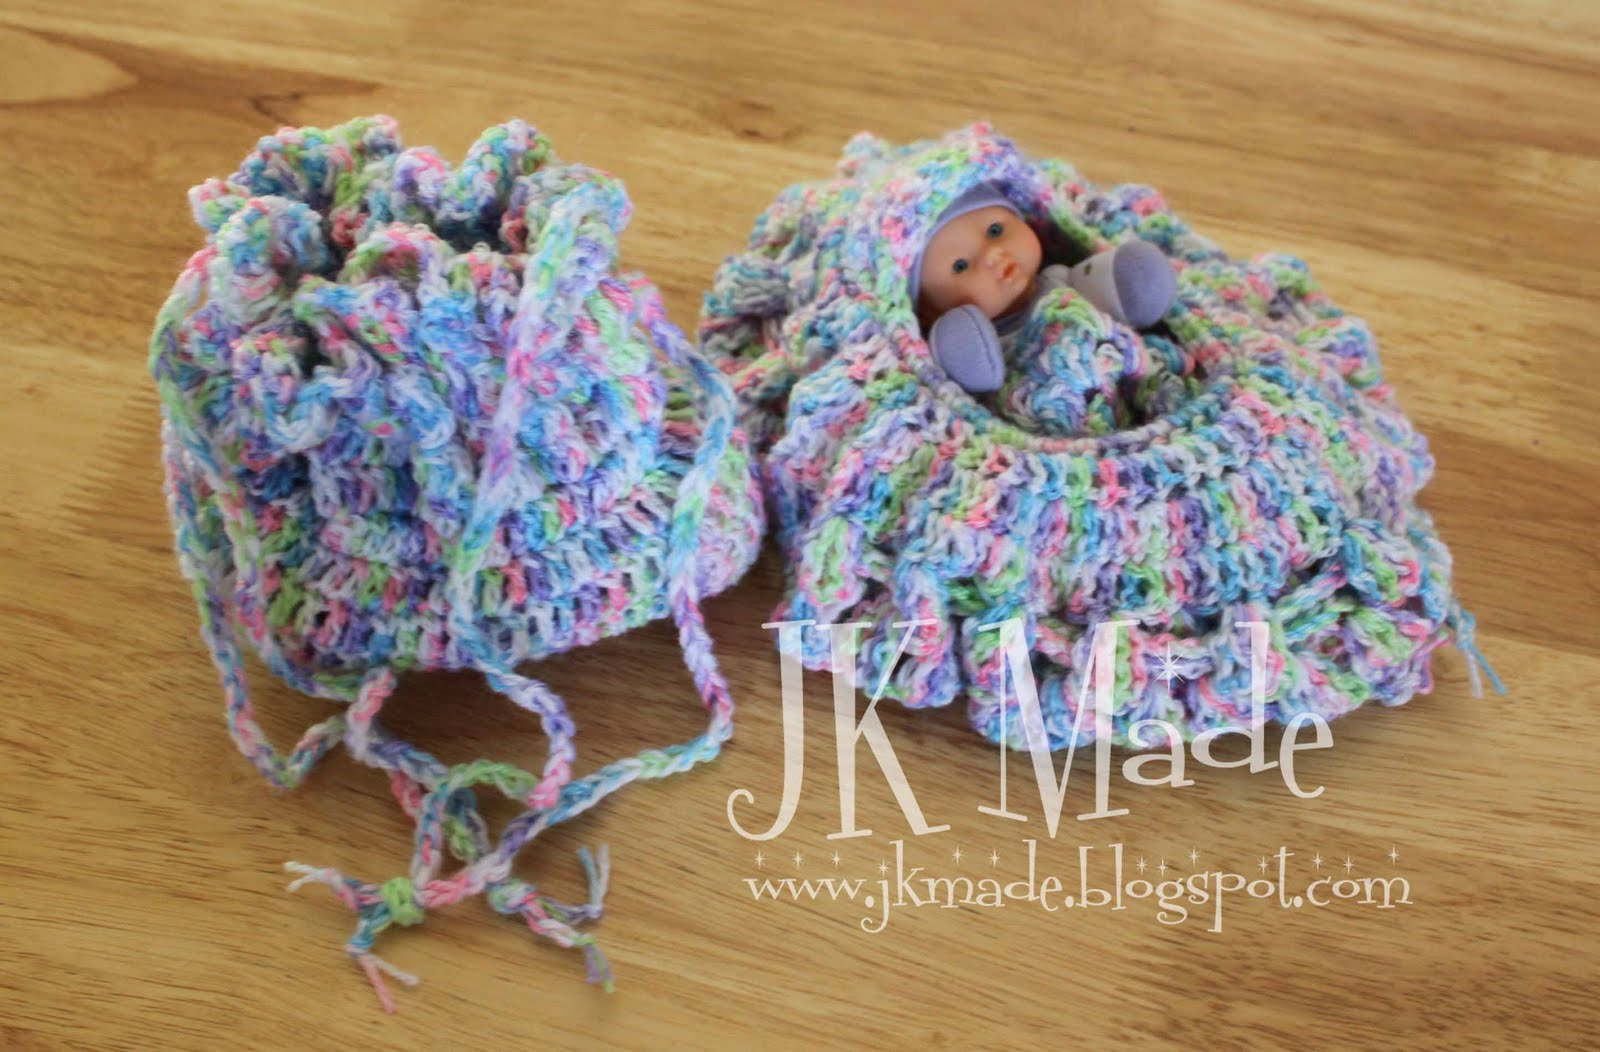 Crochet Baby Cradle Purse Pattern : Crochet baby bassinet/purse JK Made